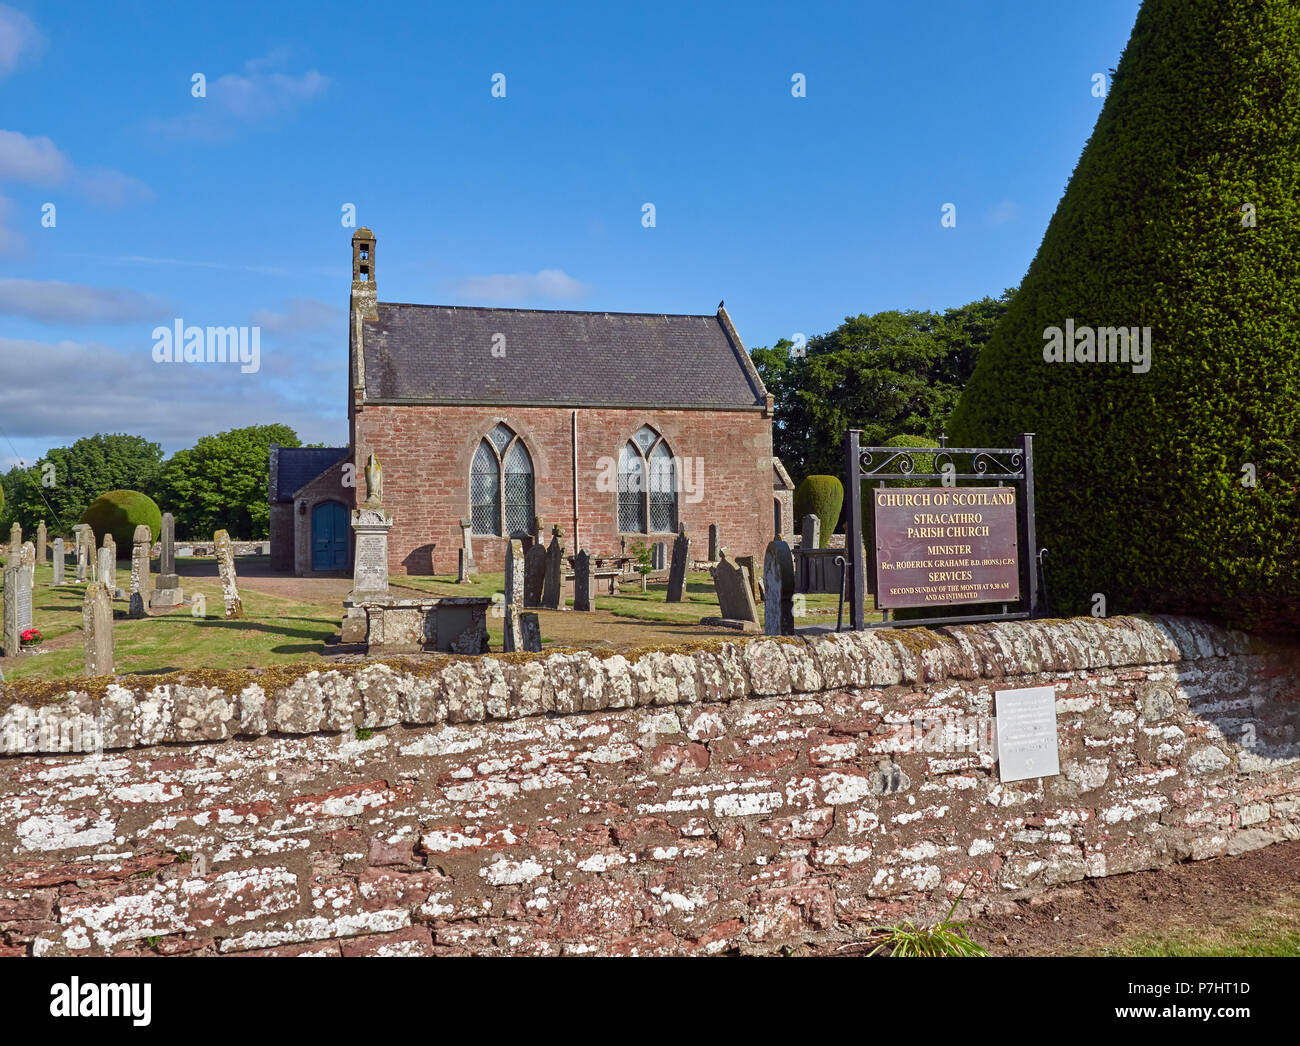 Side view of Stracathro Parish Church and its Noticeboard with its well kept Graveyard and environs, Stracathro, Angus, Scotland. - Stock Image